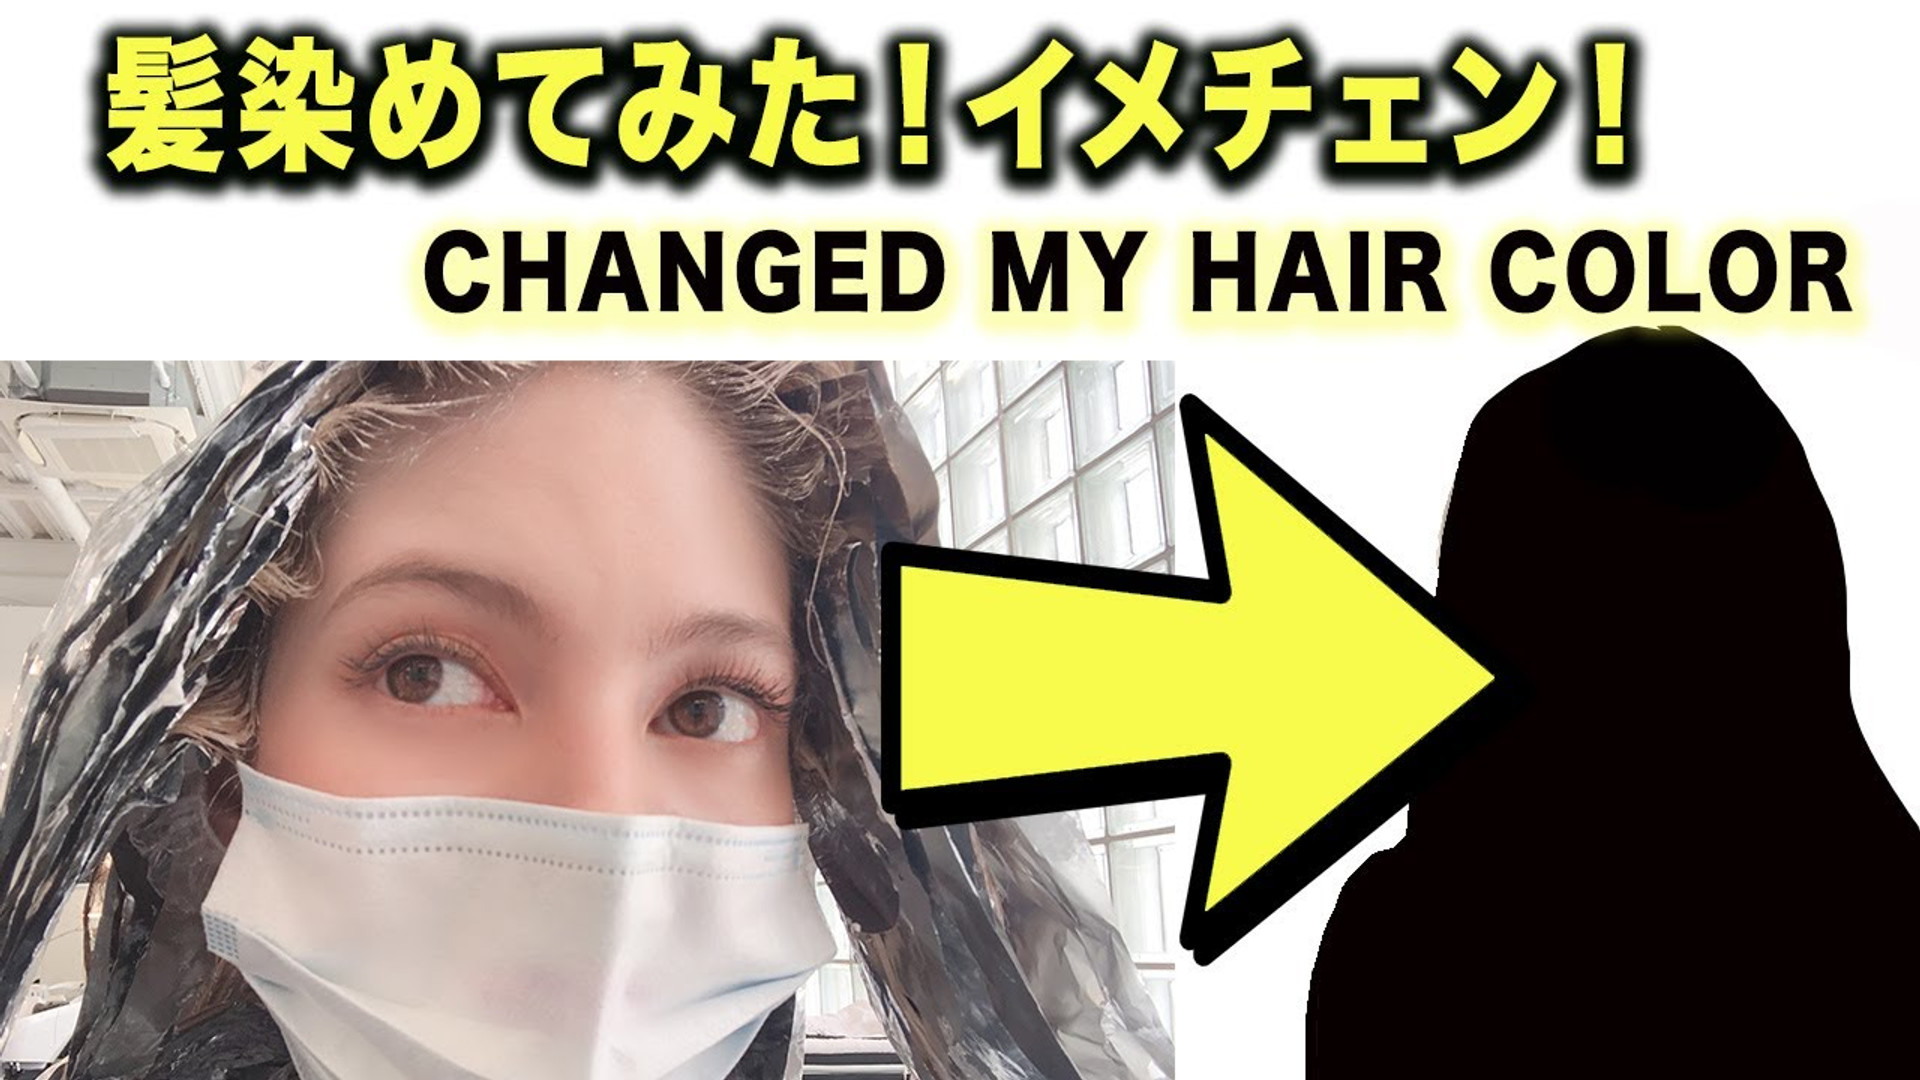 Changed my hair color - Youtube